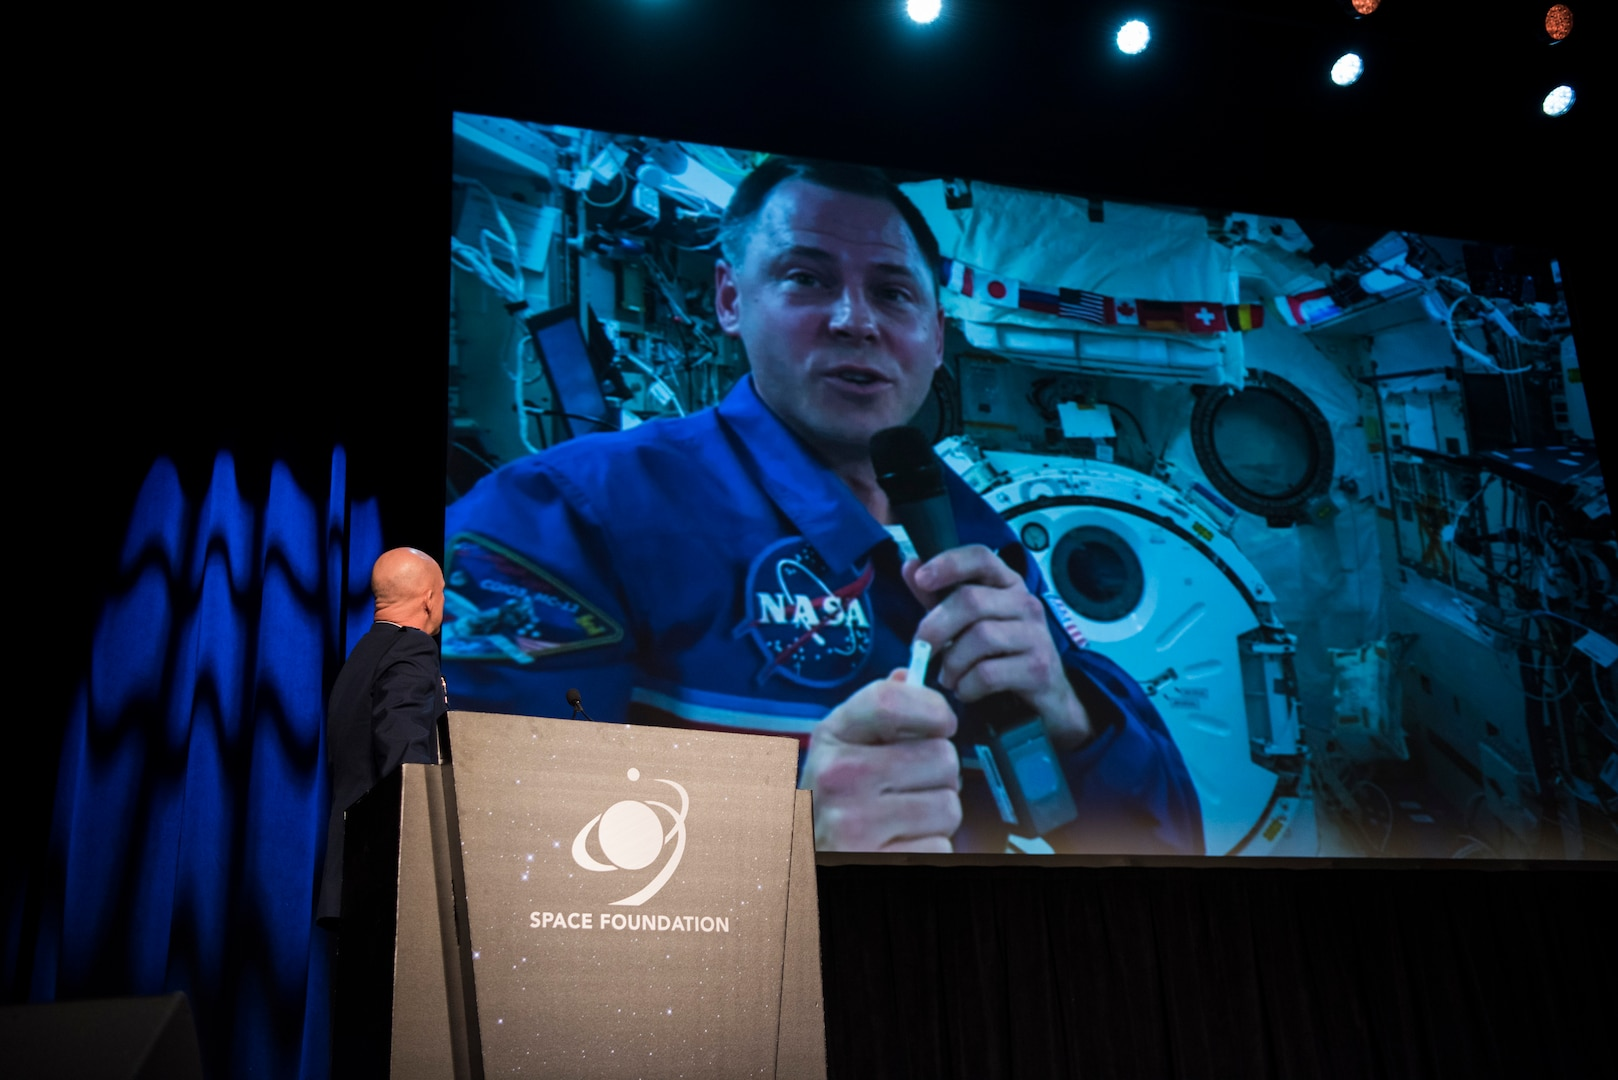 Gen. Jay Raymond, commander of Air Force Space Command and the Joint Force Space Component Command, surprises an audience at the 35th Space Symposium with a live video feed from the International Space Station featuring Air Force Col. Nick Hague, NASA Astronaut, in Colorado Springs, Colo., April 9, 2019.